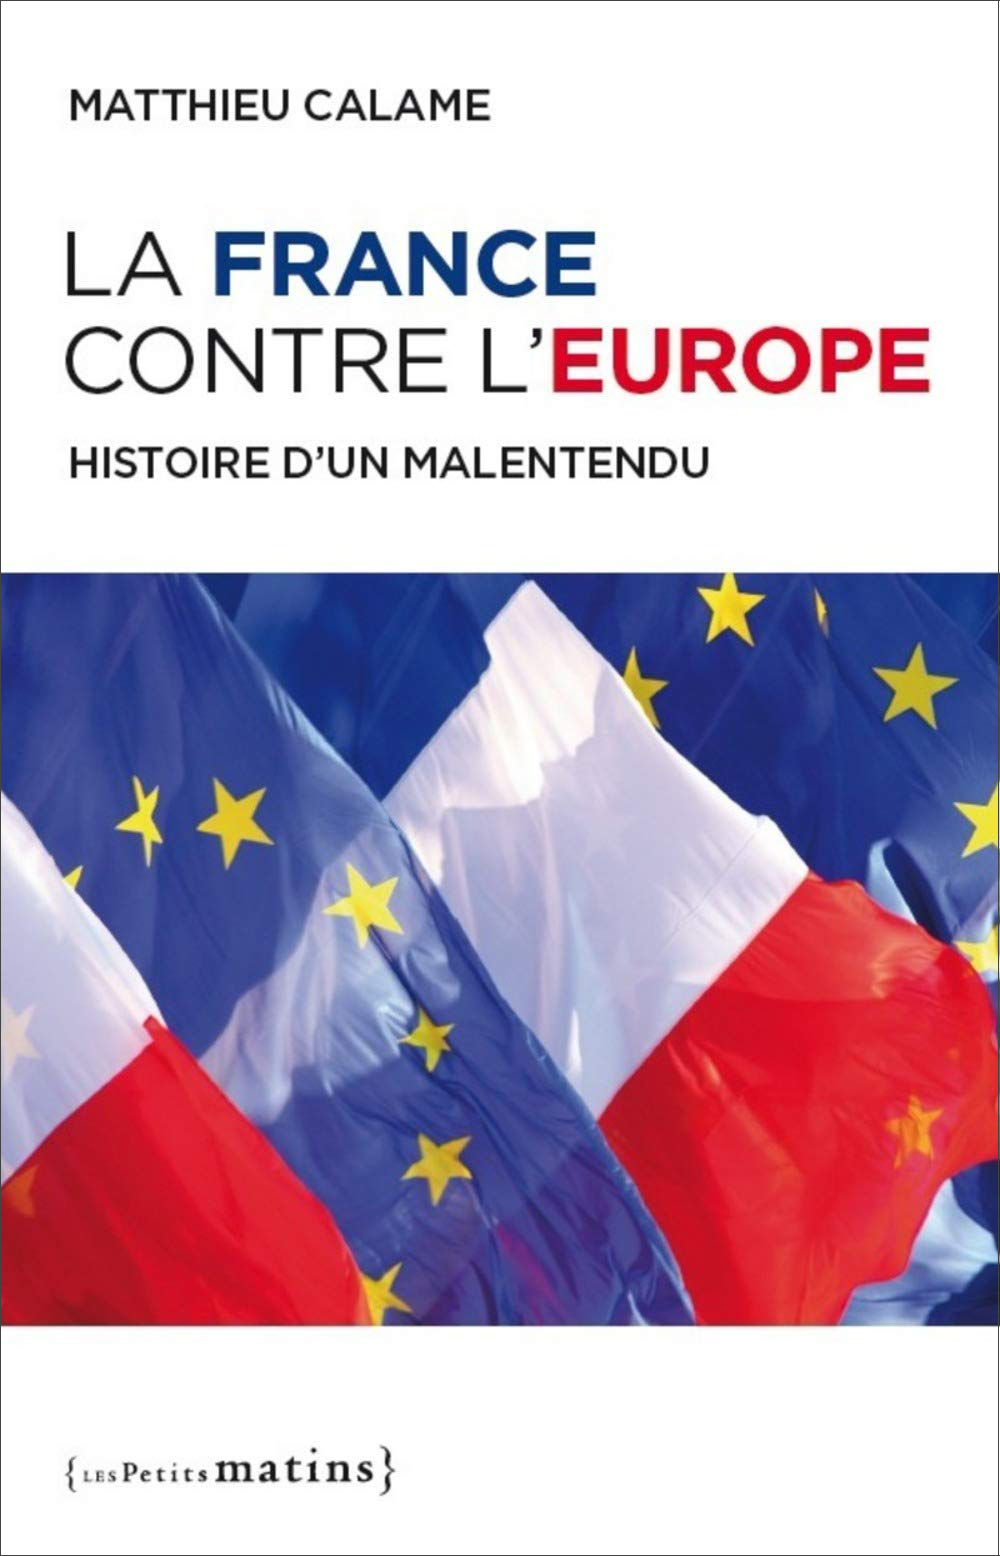 France Contre Europe2